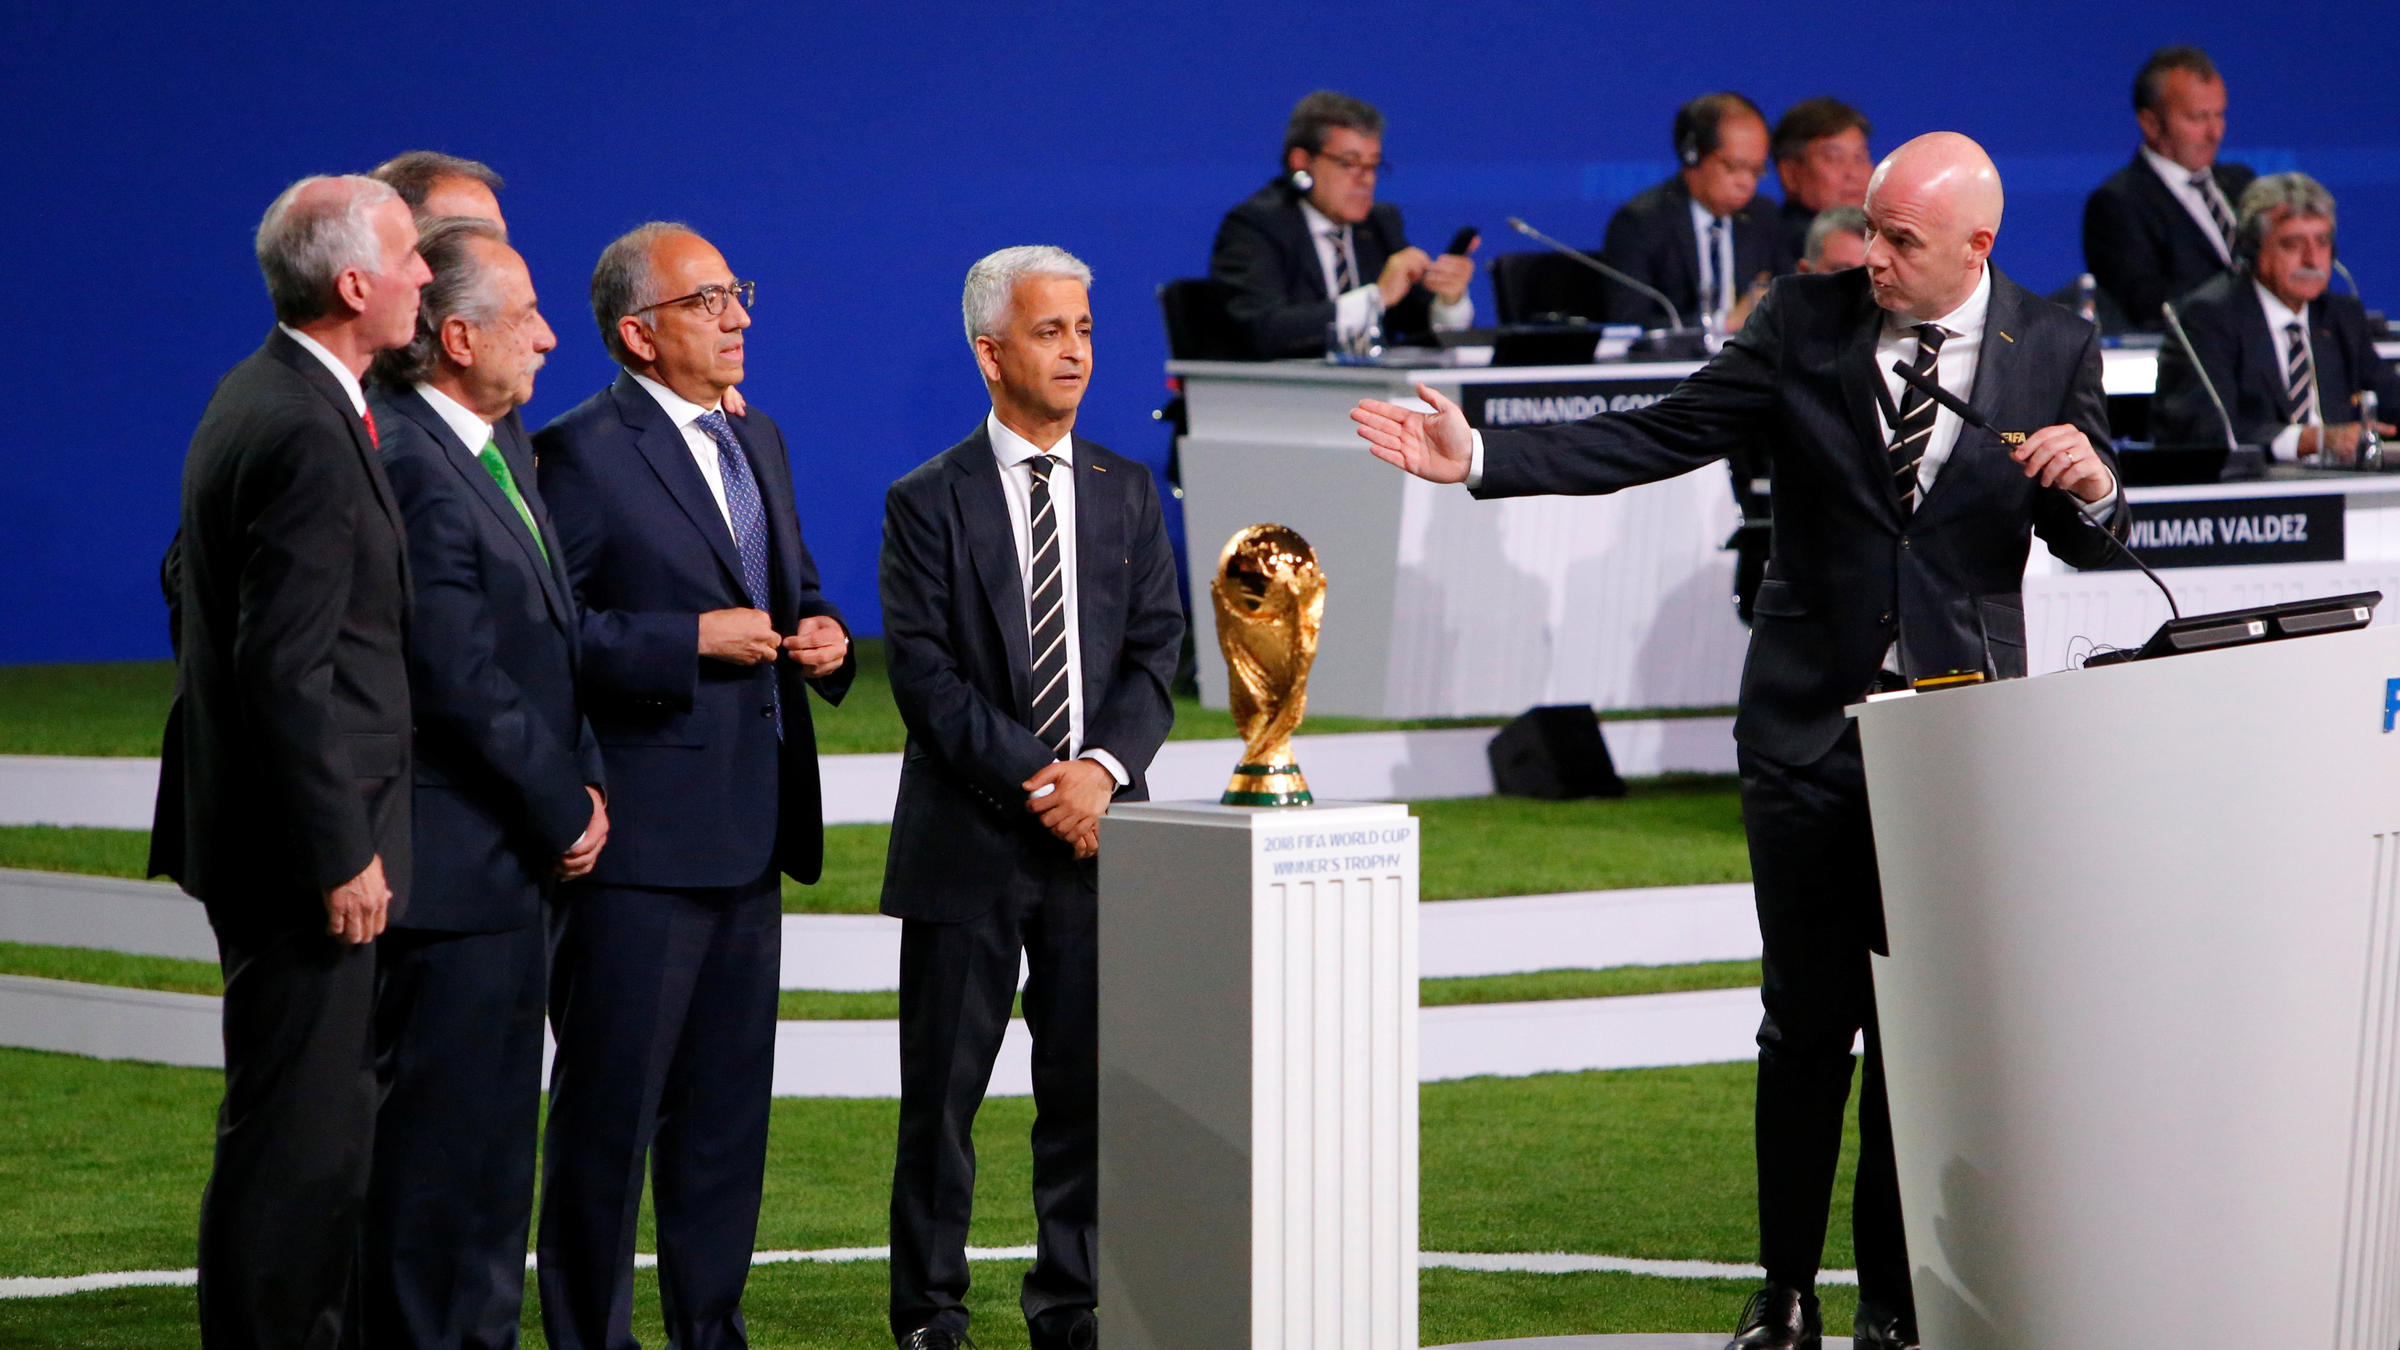 FIFA President Gianni Infantino right welcomes representatives of the united bid — from the U.S. Canada and Mexico — as soccer's governing body selects its host for the 2026 FIFA World Cup during the 68th FIFA Congress in Moscow Russia